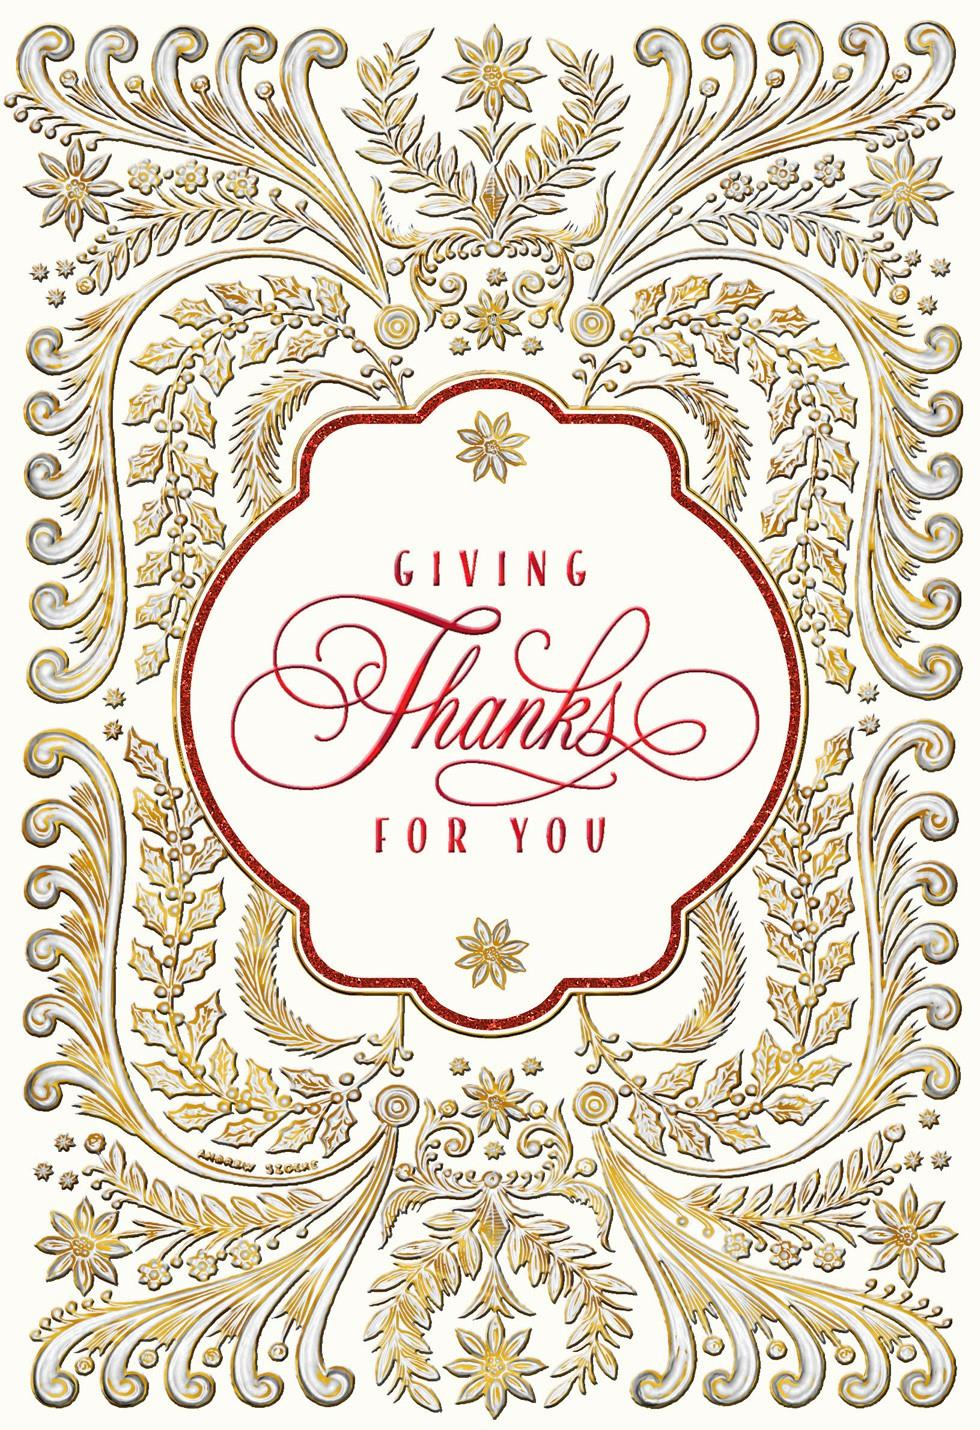 Giving Thanks For You Christmas Card Greeting Cards